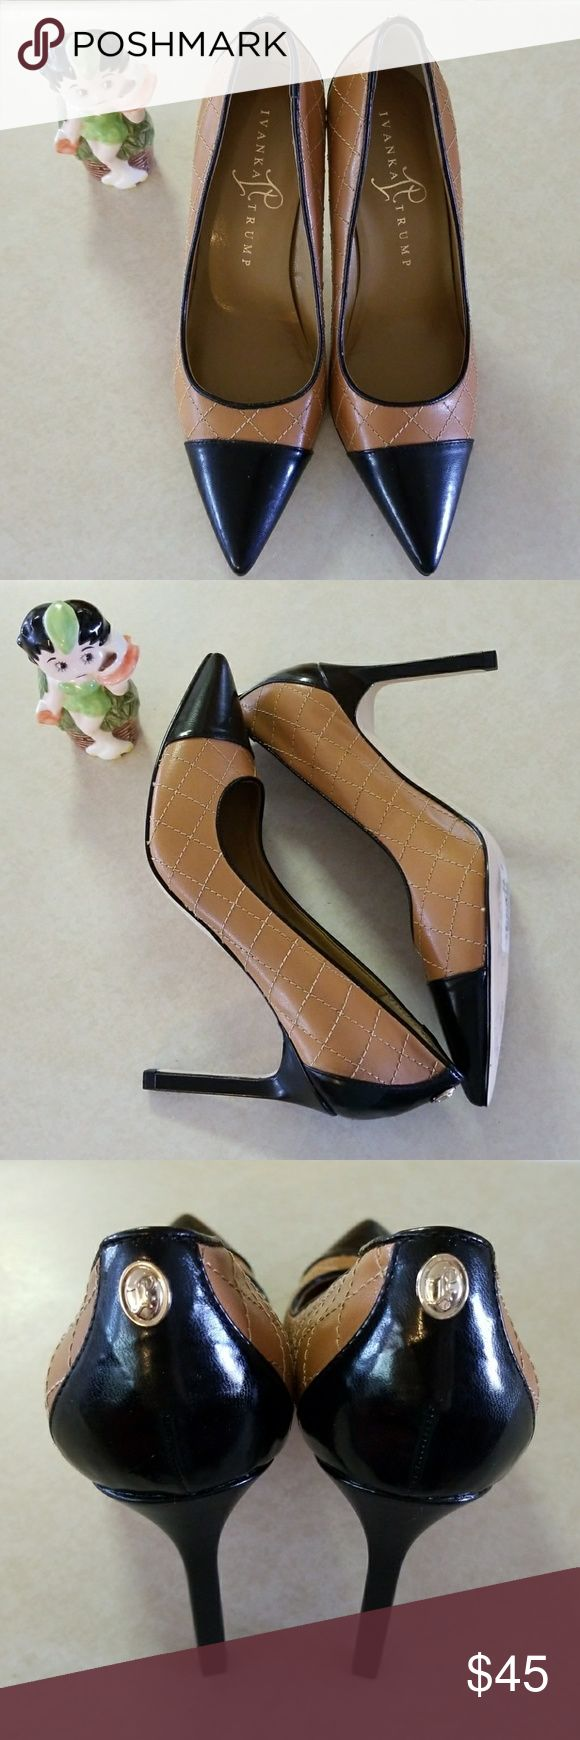 Ivanka Trump High Heels 6.5 NEW classic design, new, with some sticker residue. bundle and save. Ivanka Trump Shoes Heels